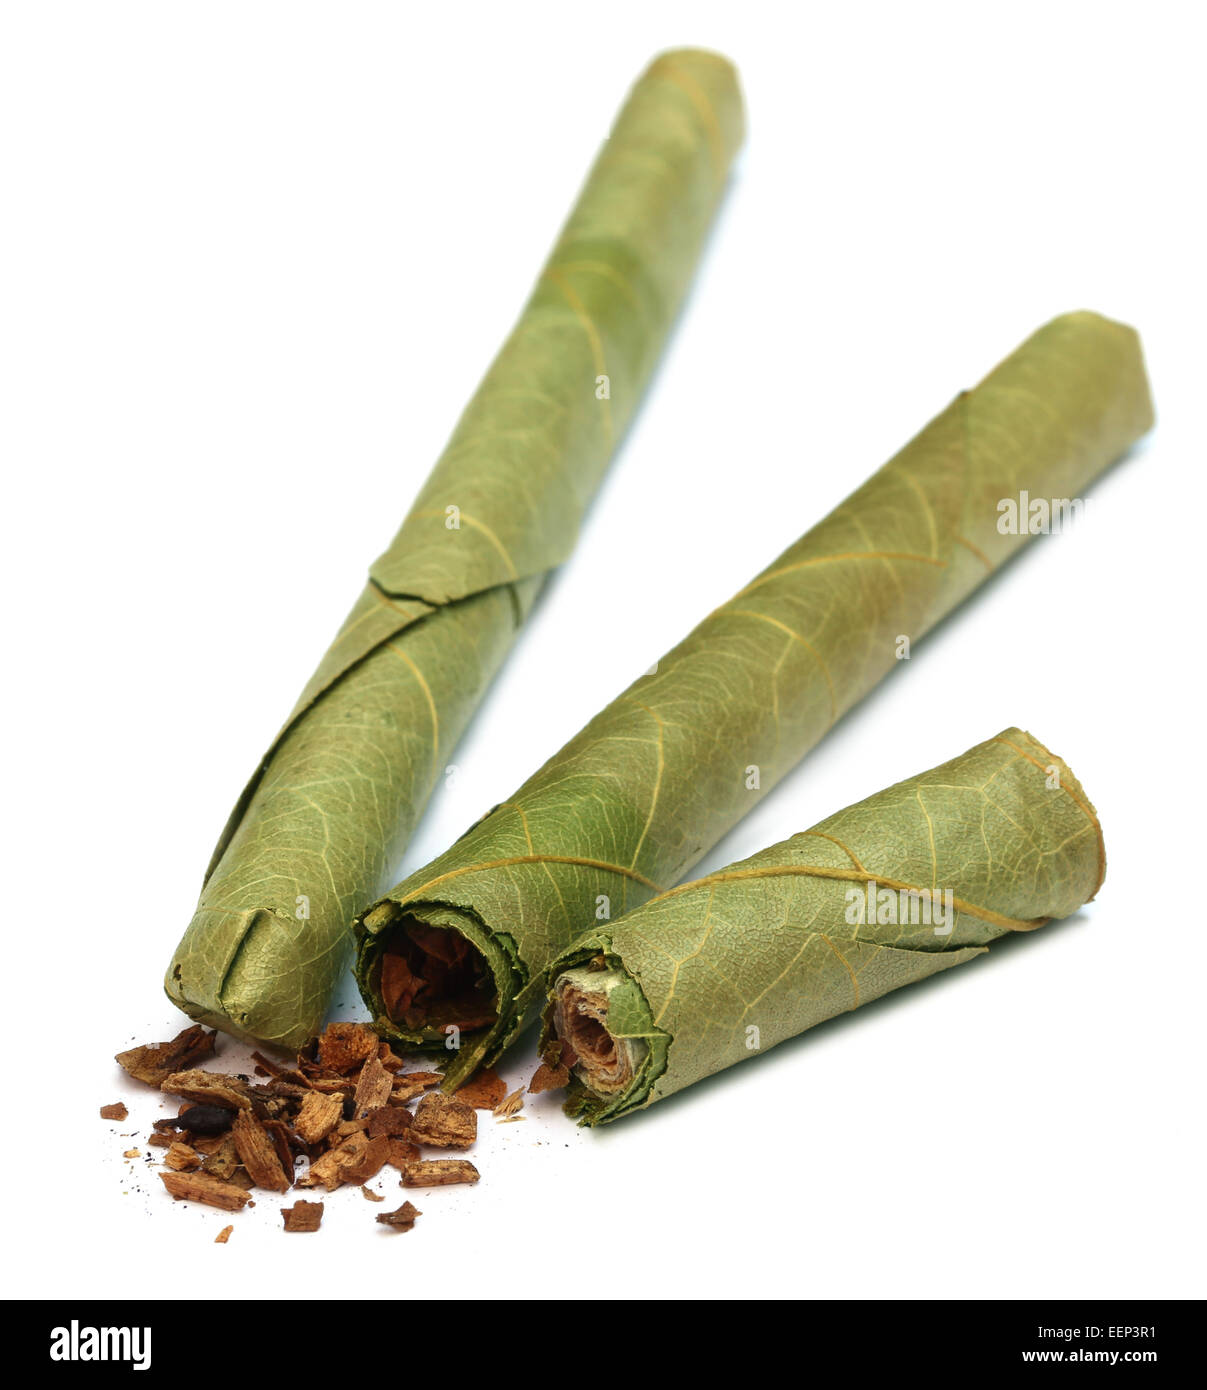 Cigar locally named as Cheroot in Myanmar over white background - Stock Image